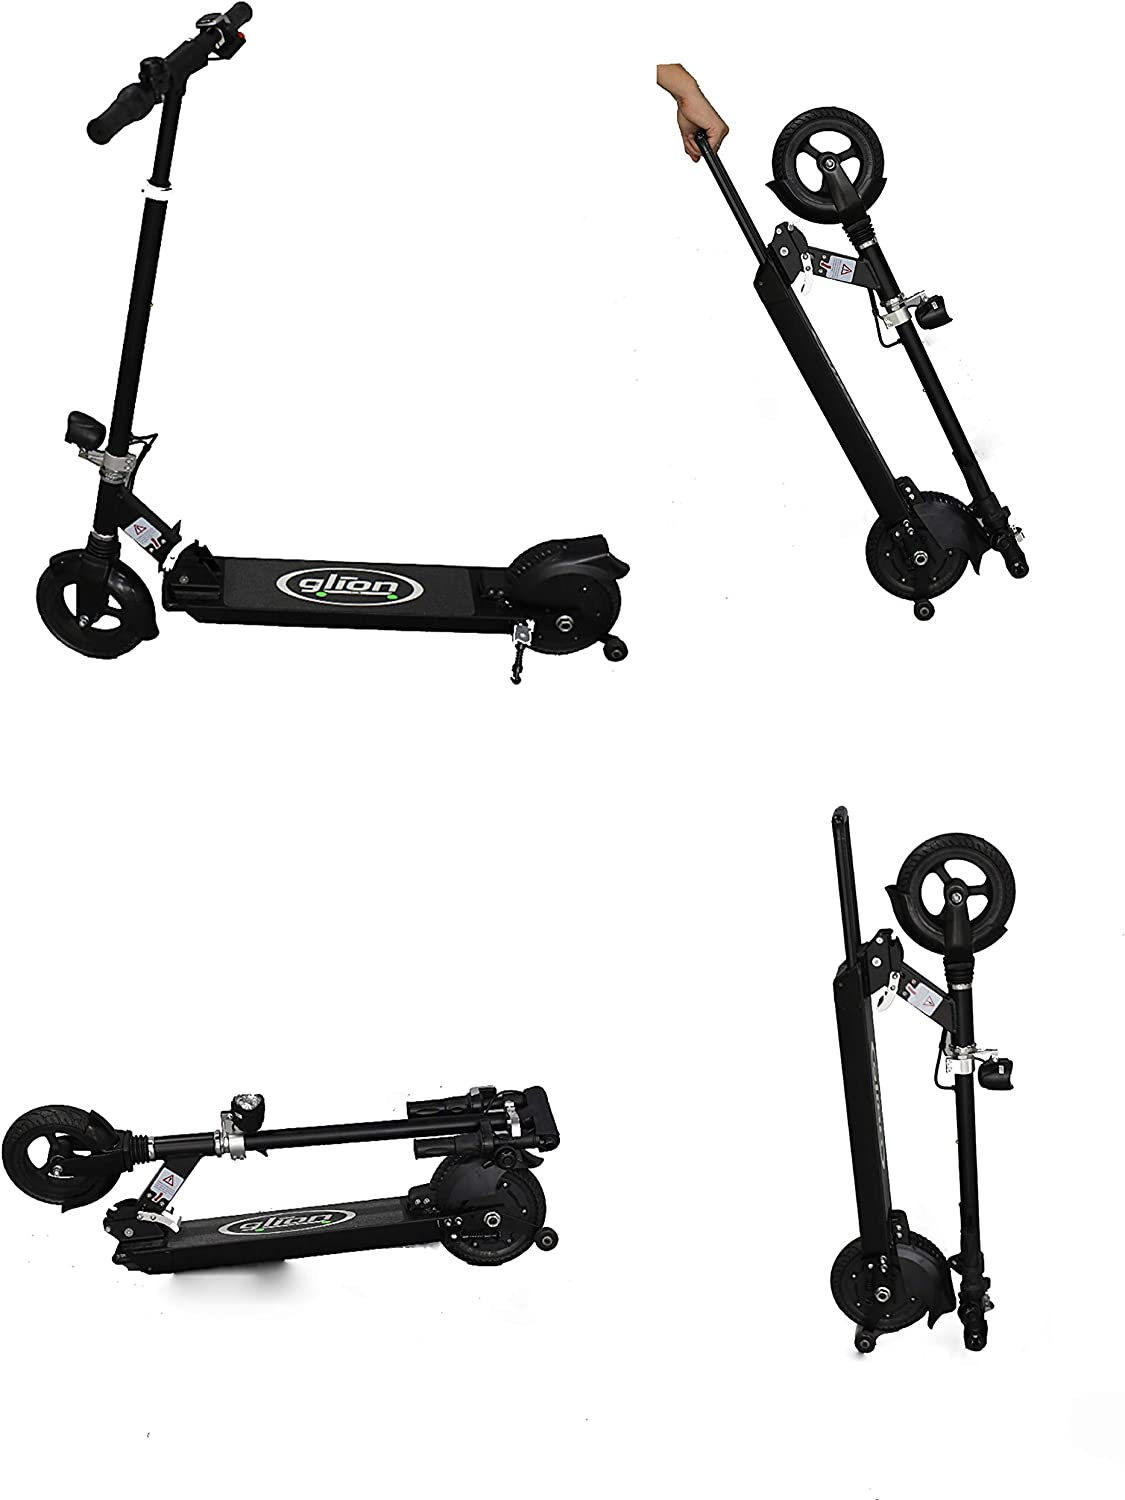 OTRAX GKS Electric Scooter for Kids